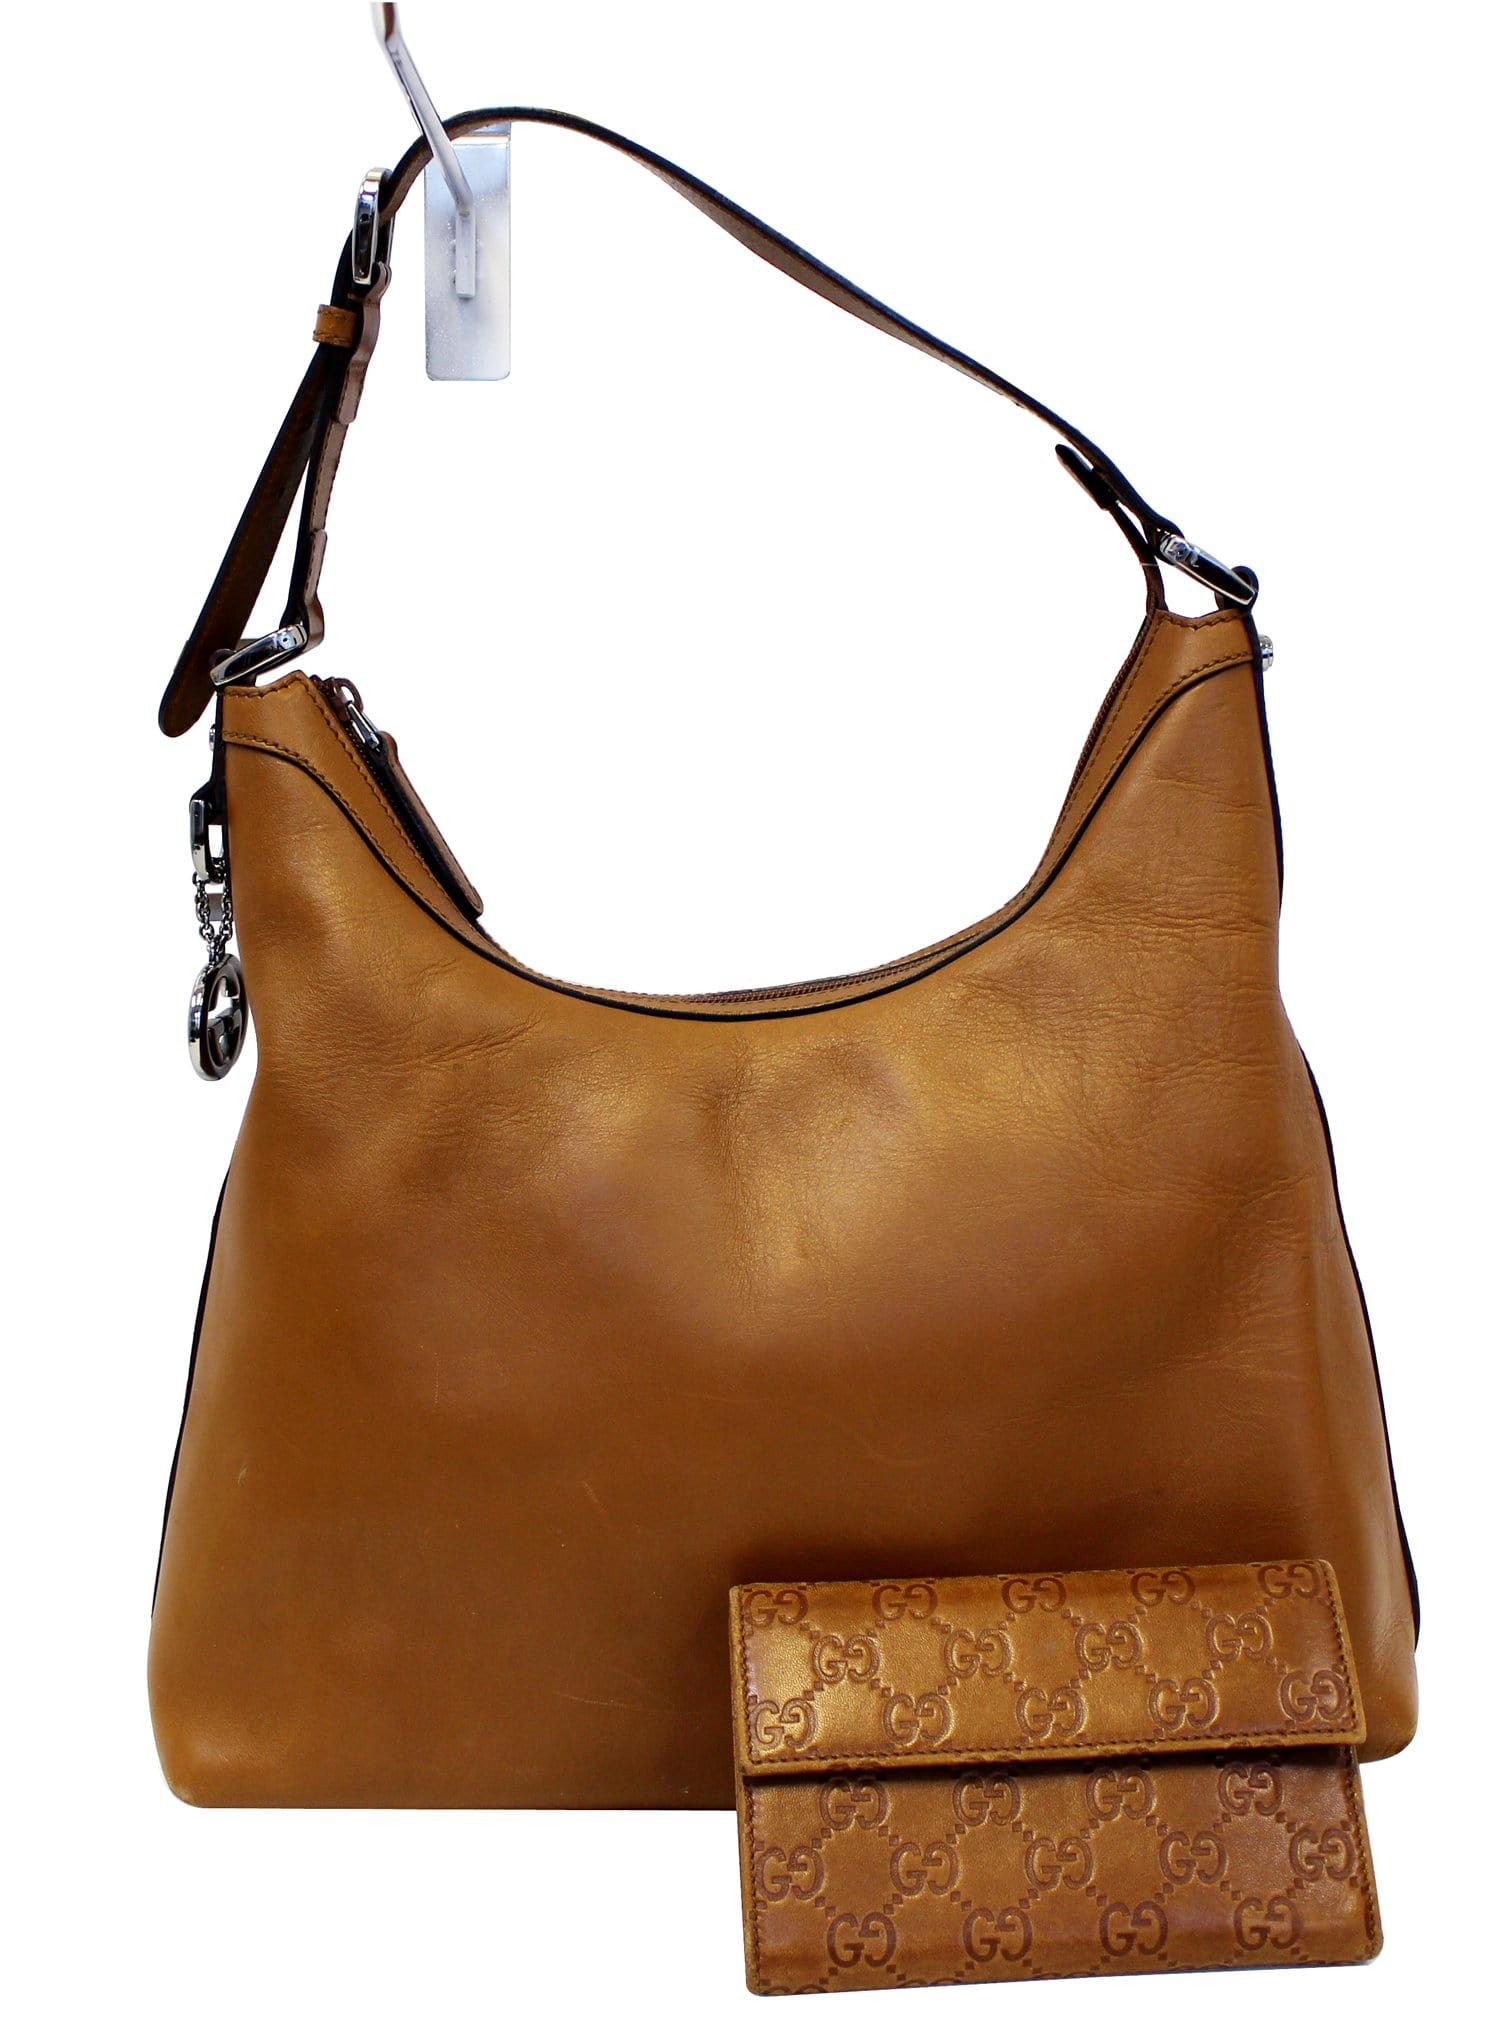 GUCCI Brown Leather Hobo Bag with Matching Wallet 79def846be